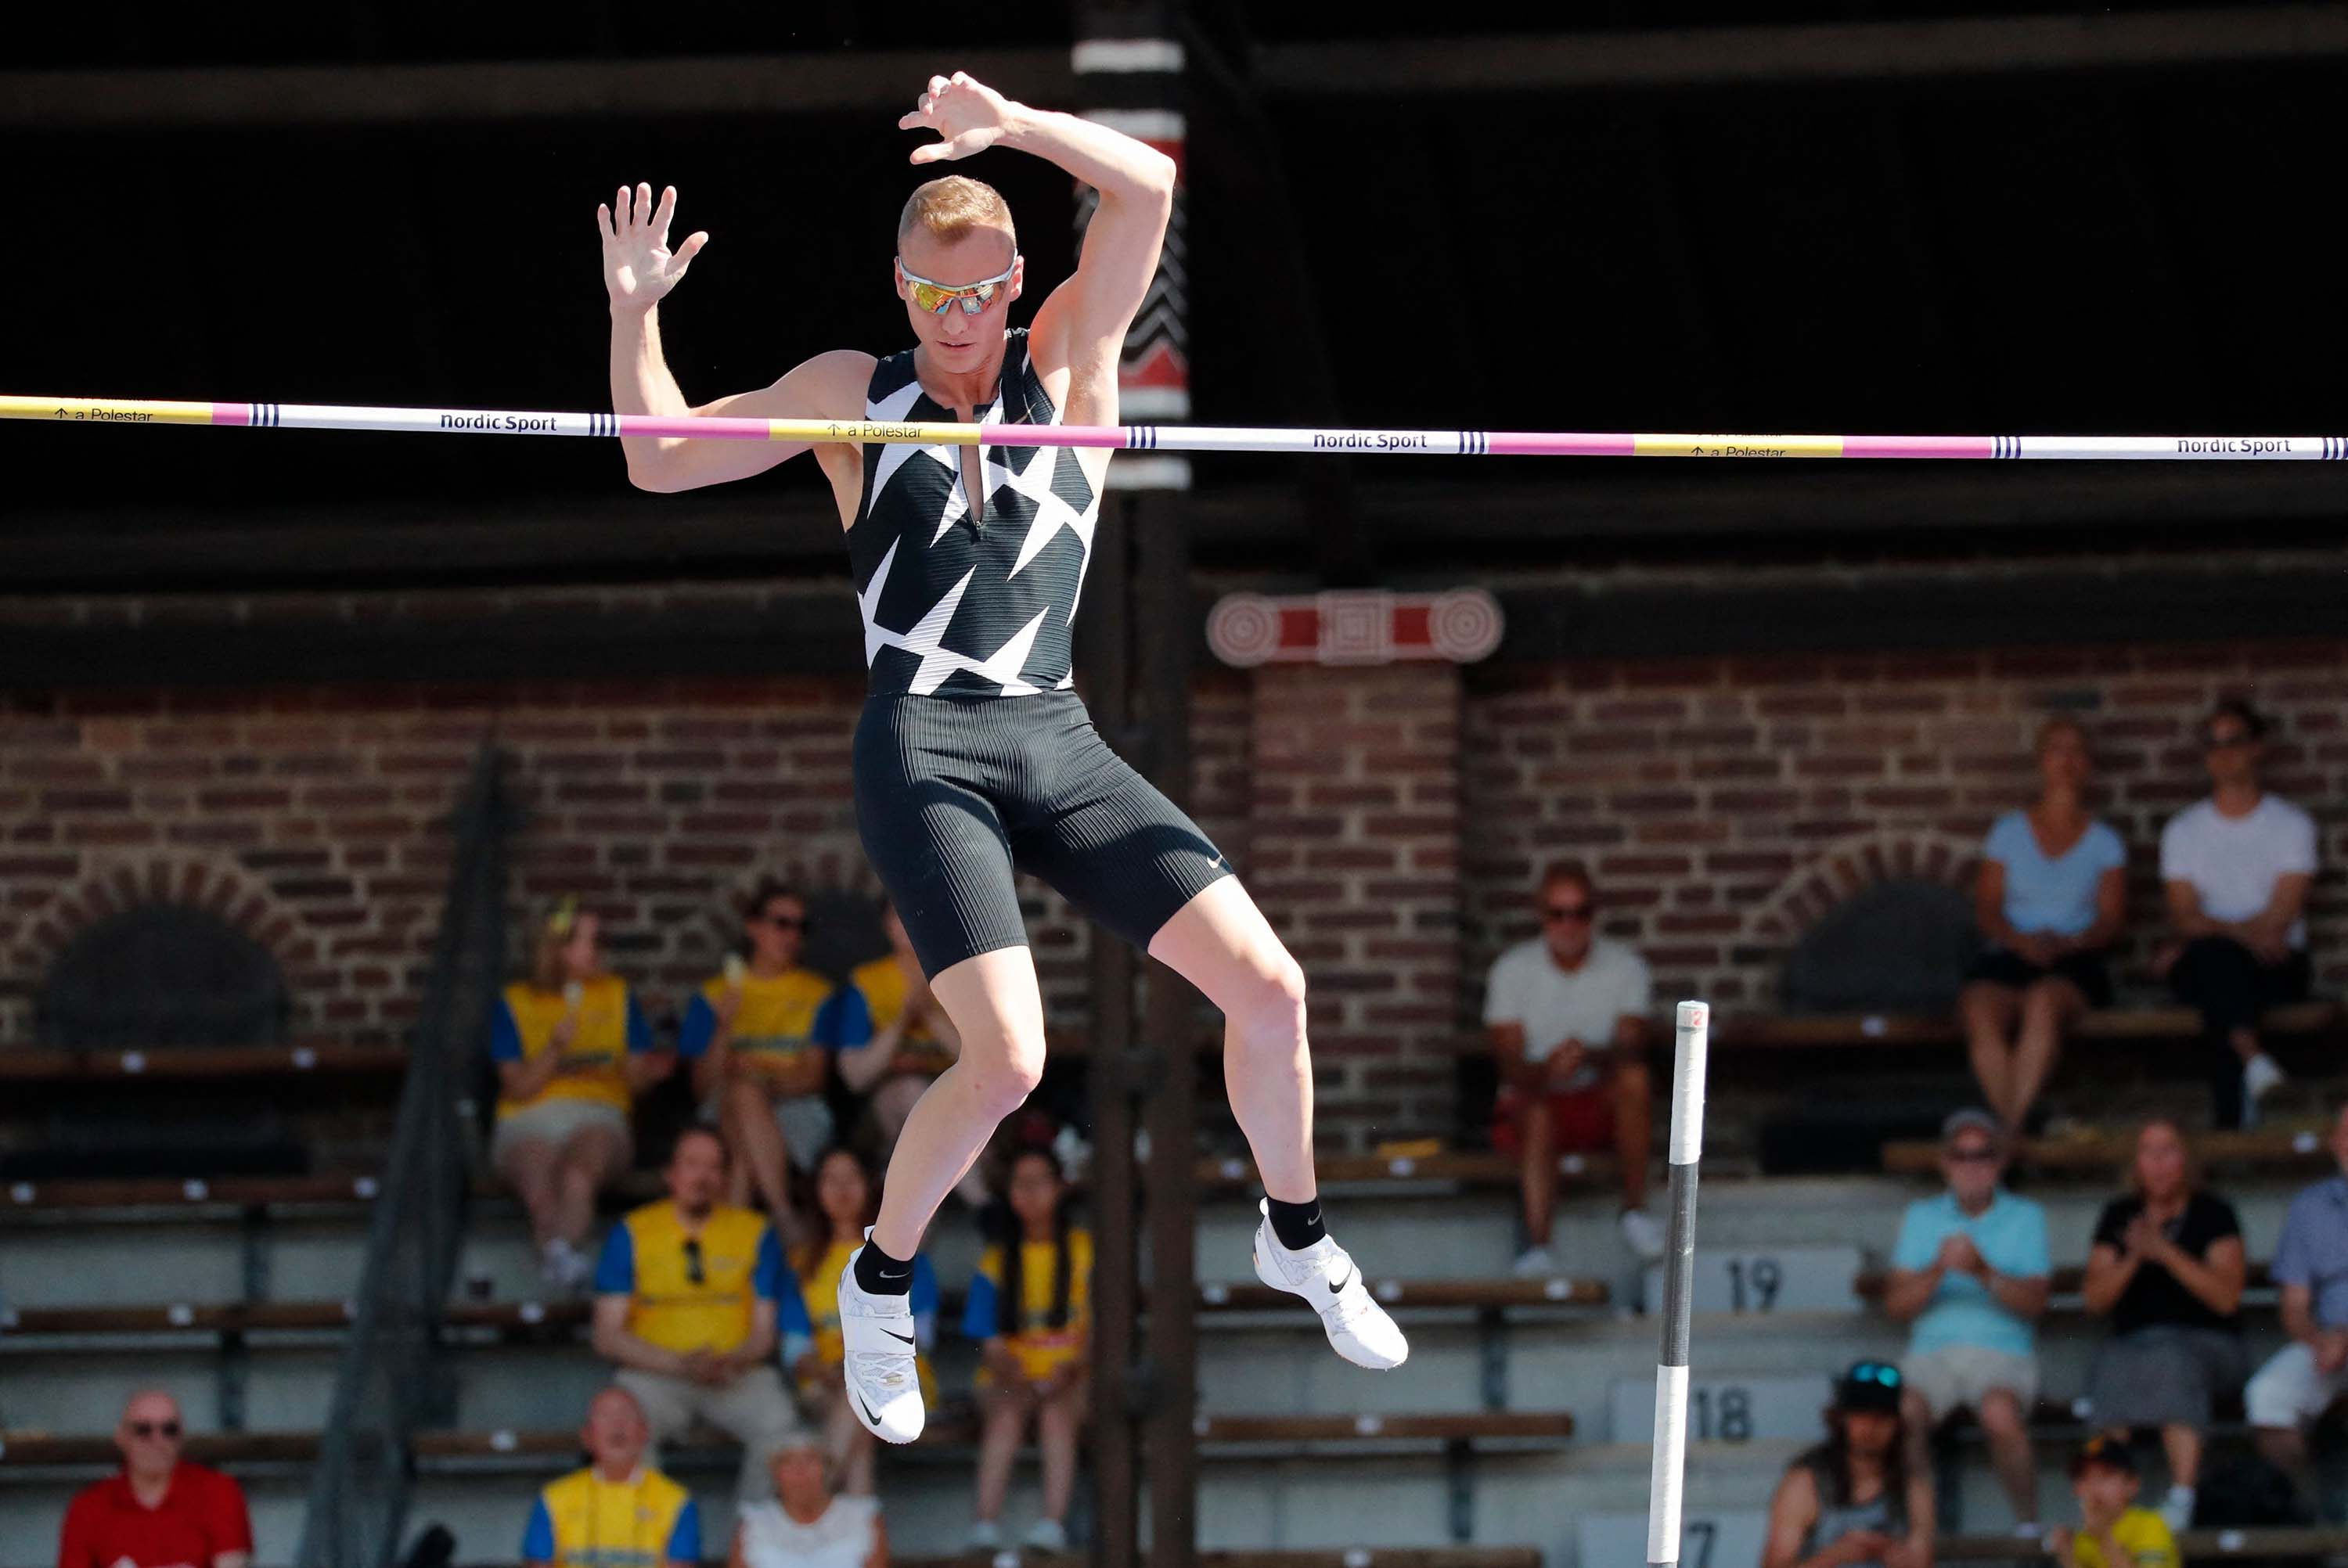 American Sam Kendricks competes in the men's pole vault final at the Wanda Diamond League Track and Field Championships in Stockholm, Sweden on July 4.